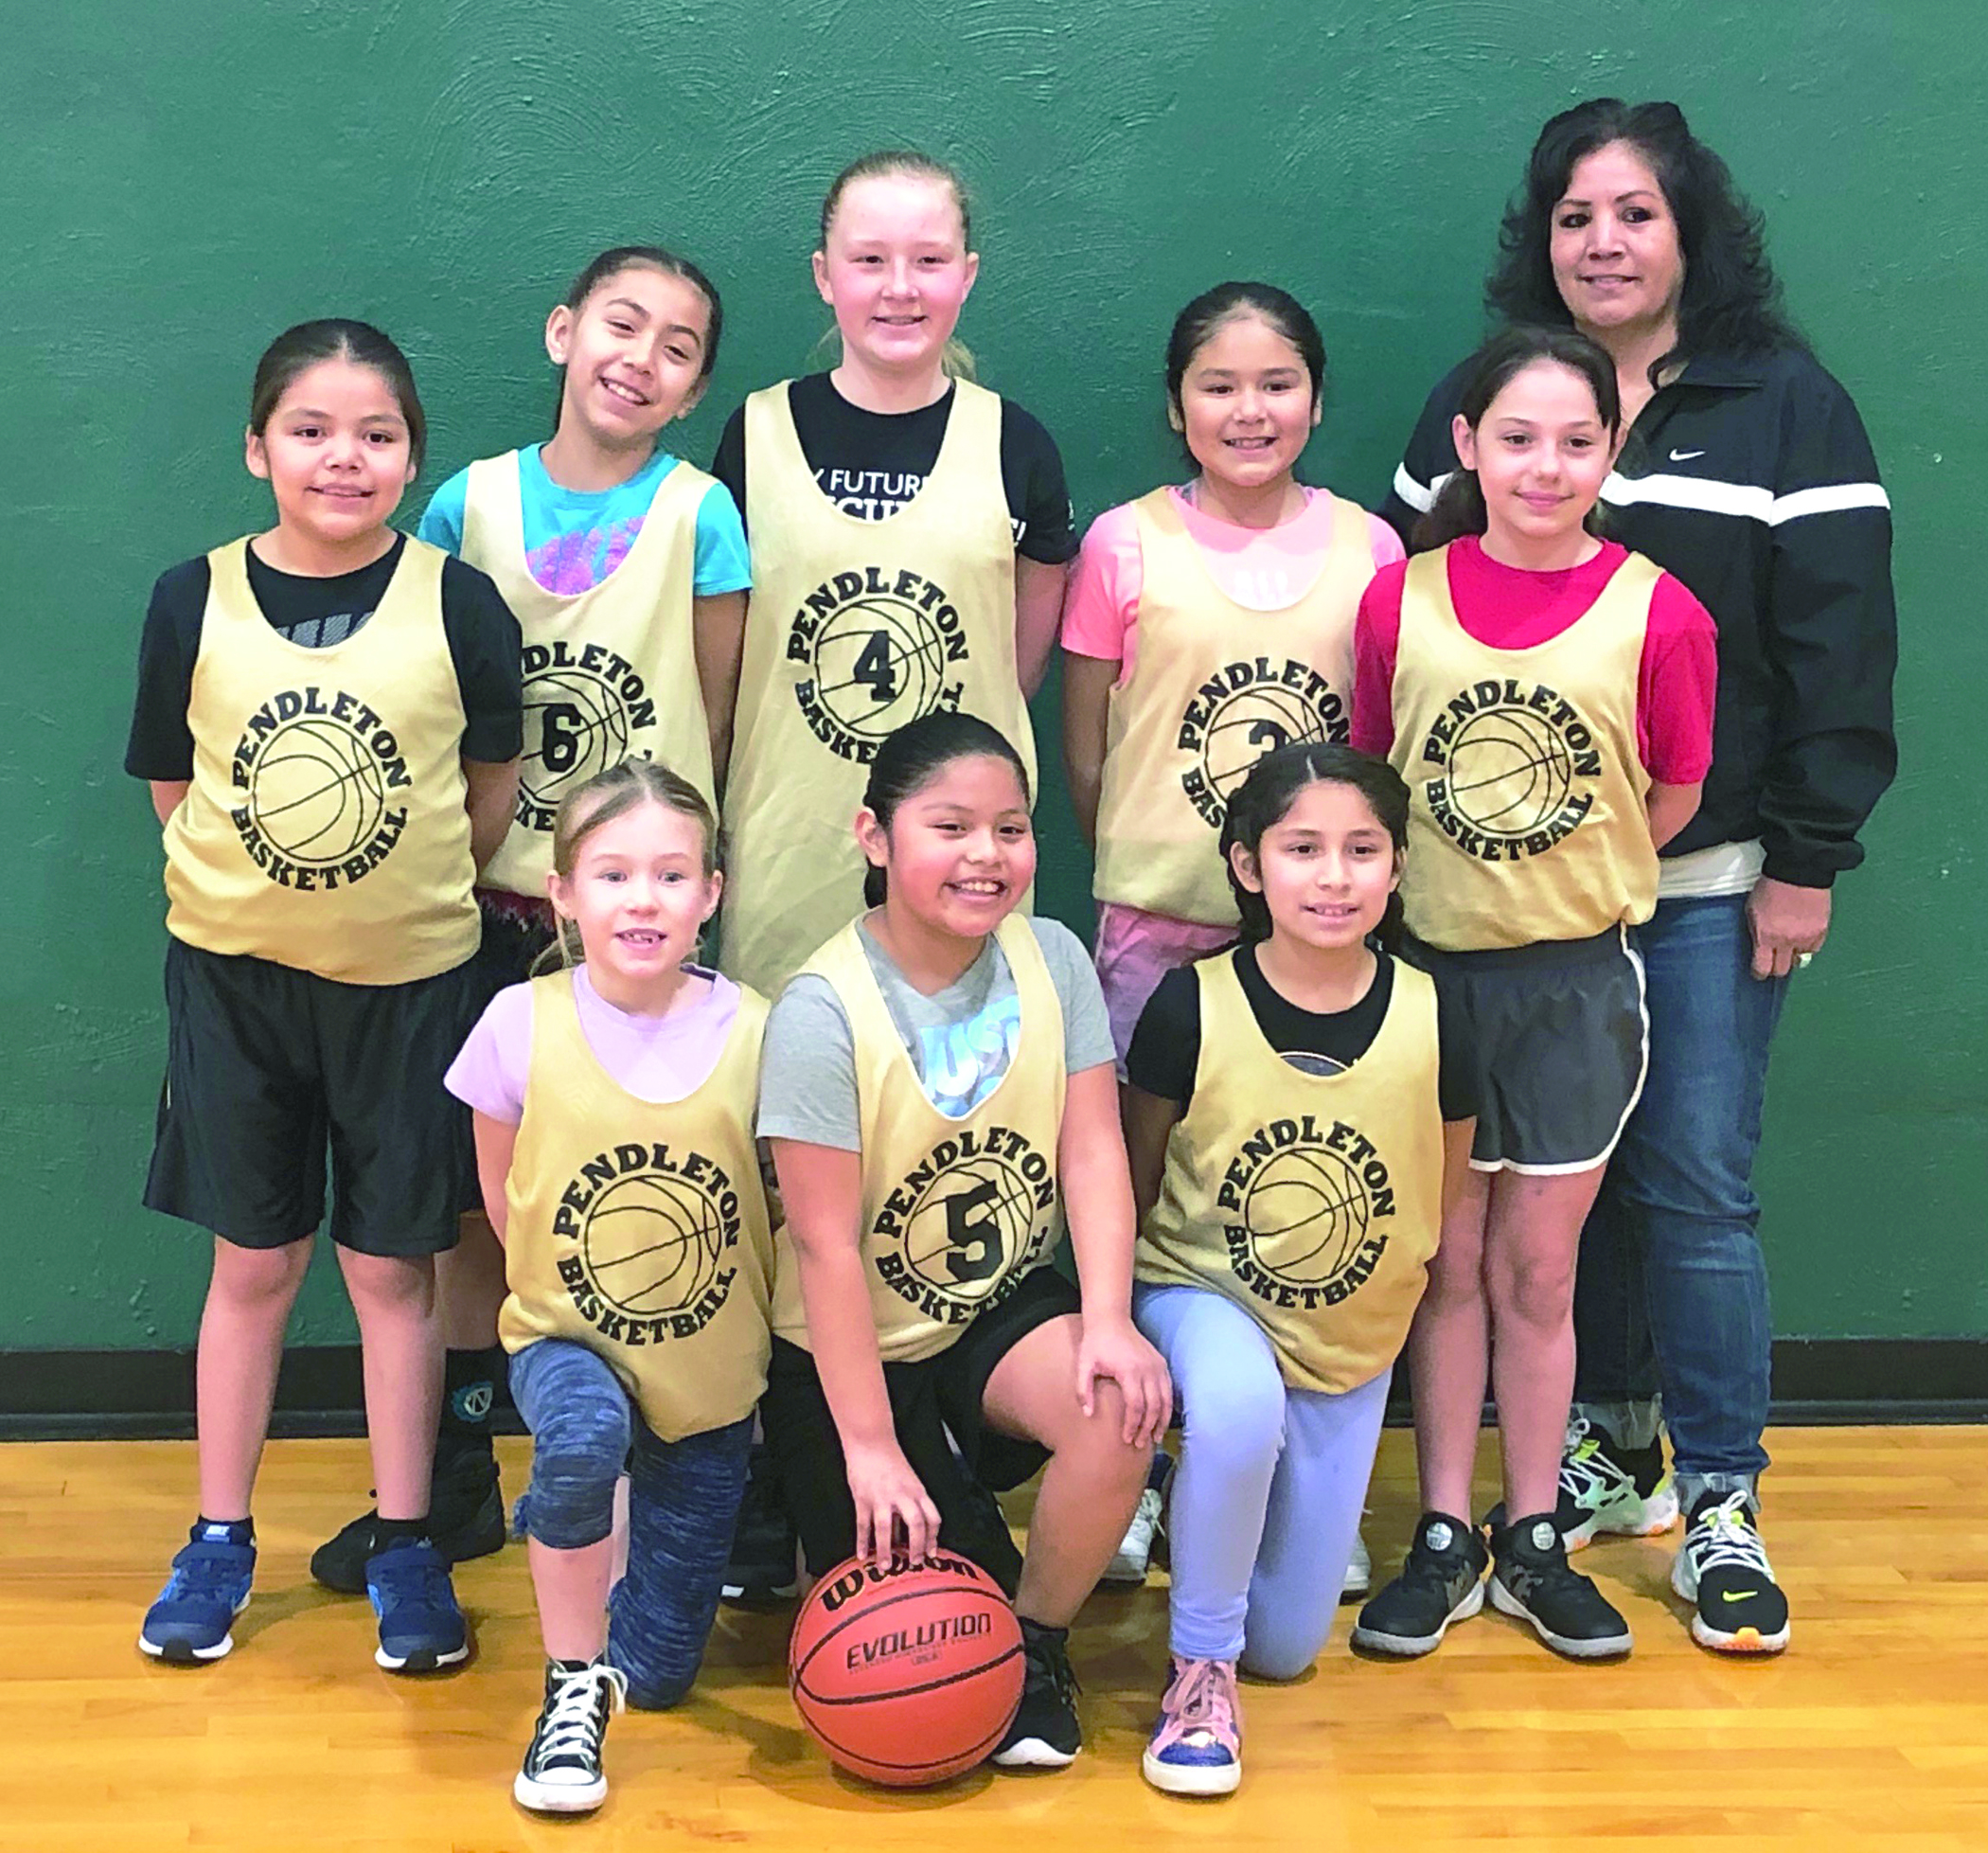 Youth basketball team.